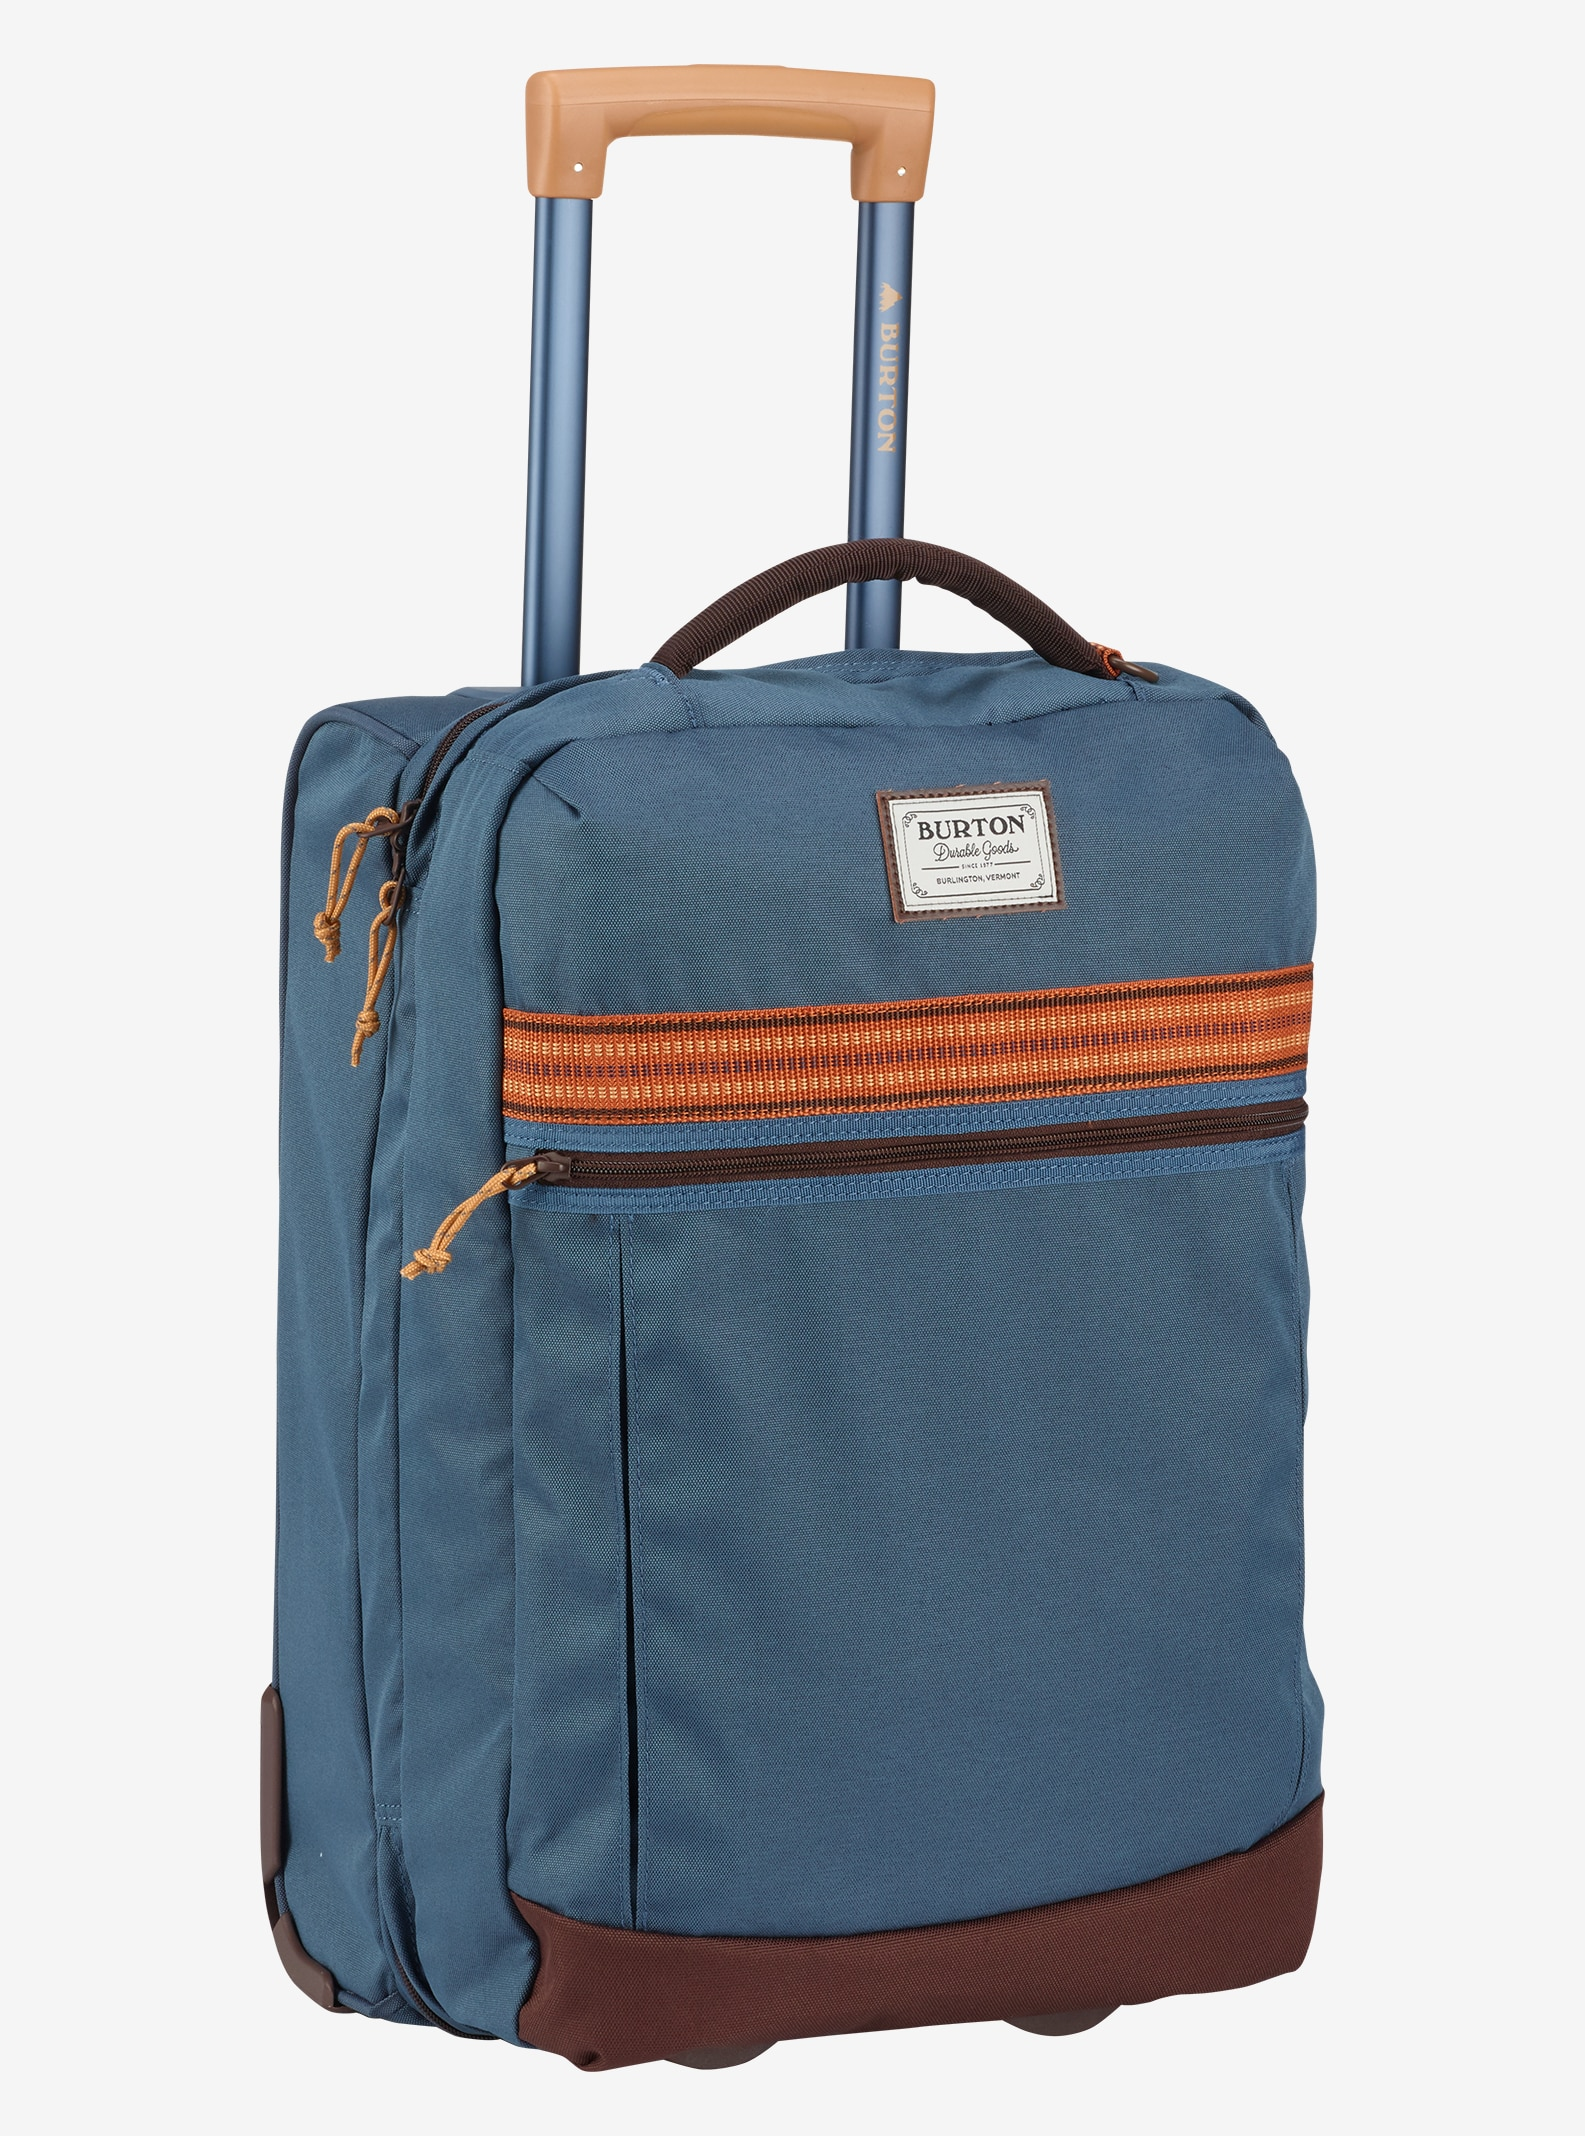 Burton Overnighter Roller Travel Bag shown in Washed Blue